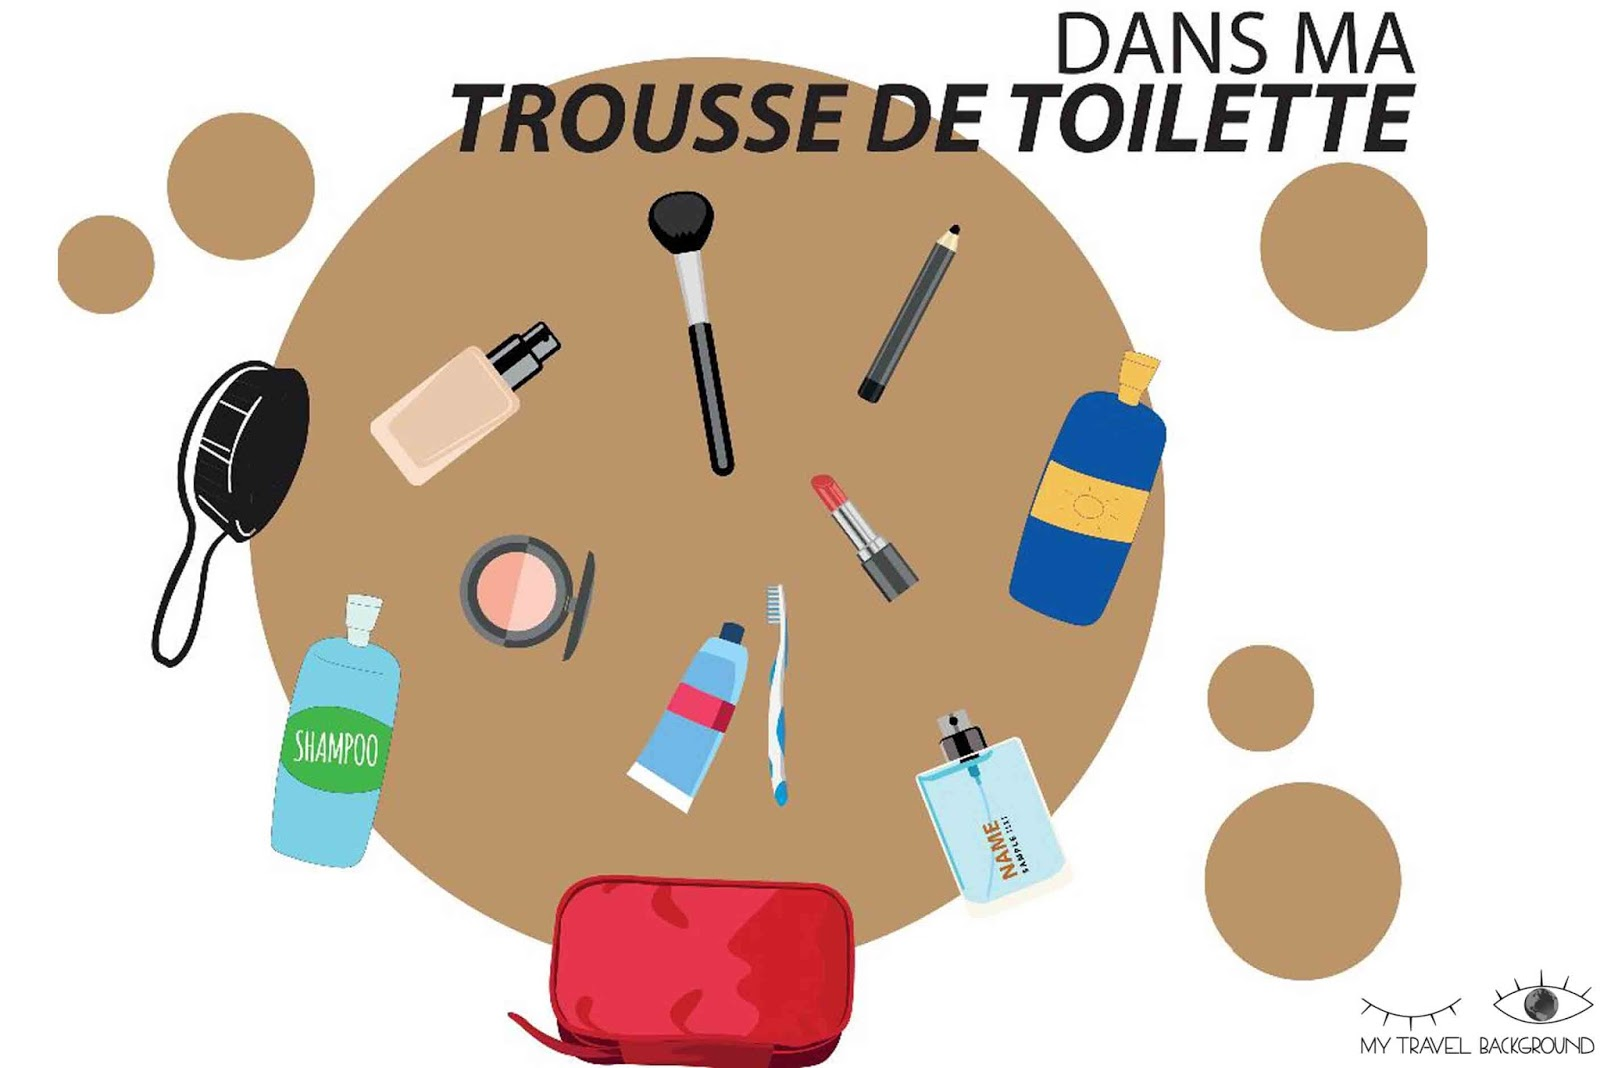 My Travel Background : Comment organiser sa valise pour un long voyage? - Dans ma trousse de toilette